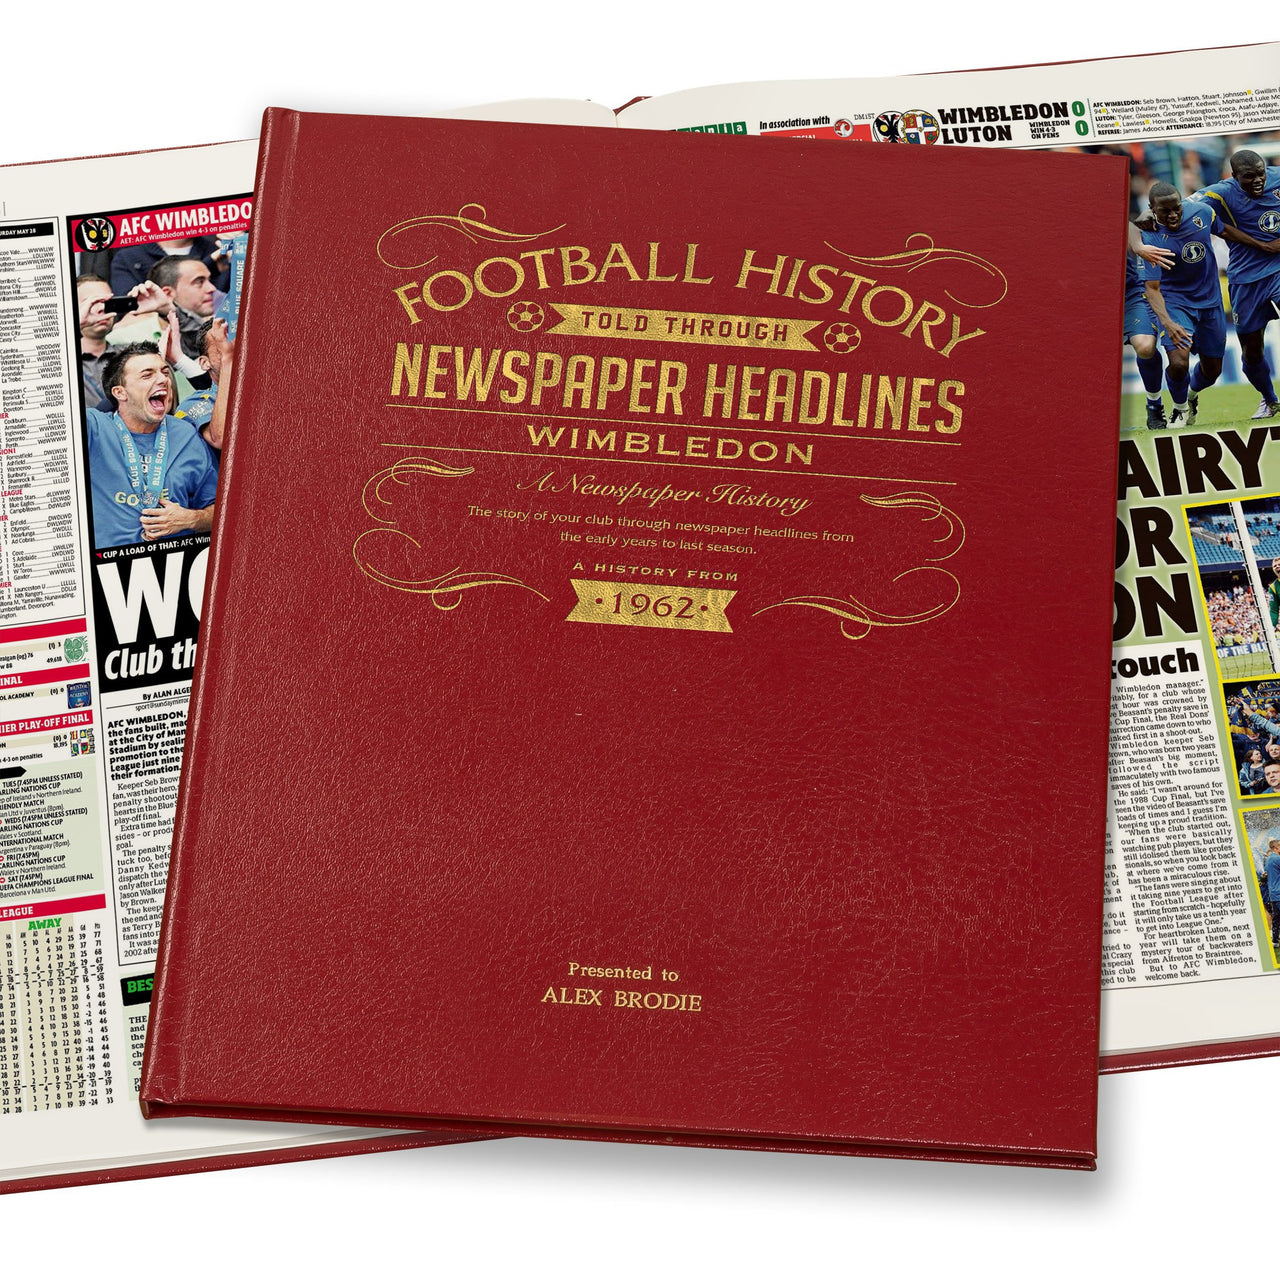 Wimbledon Newspaper Book - Leather Red Cover